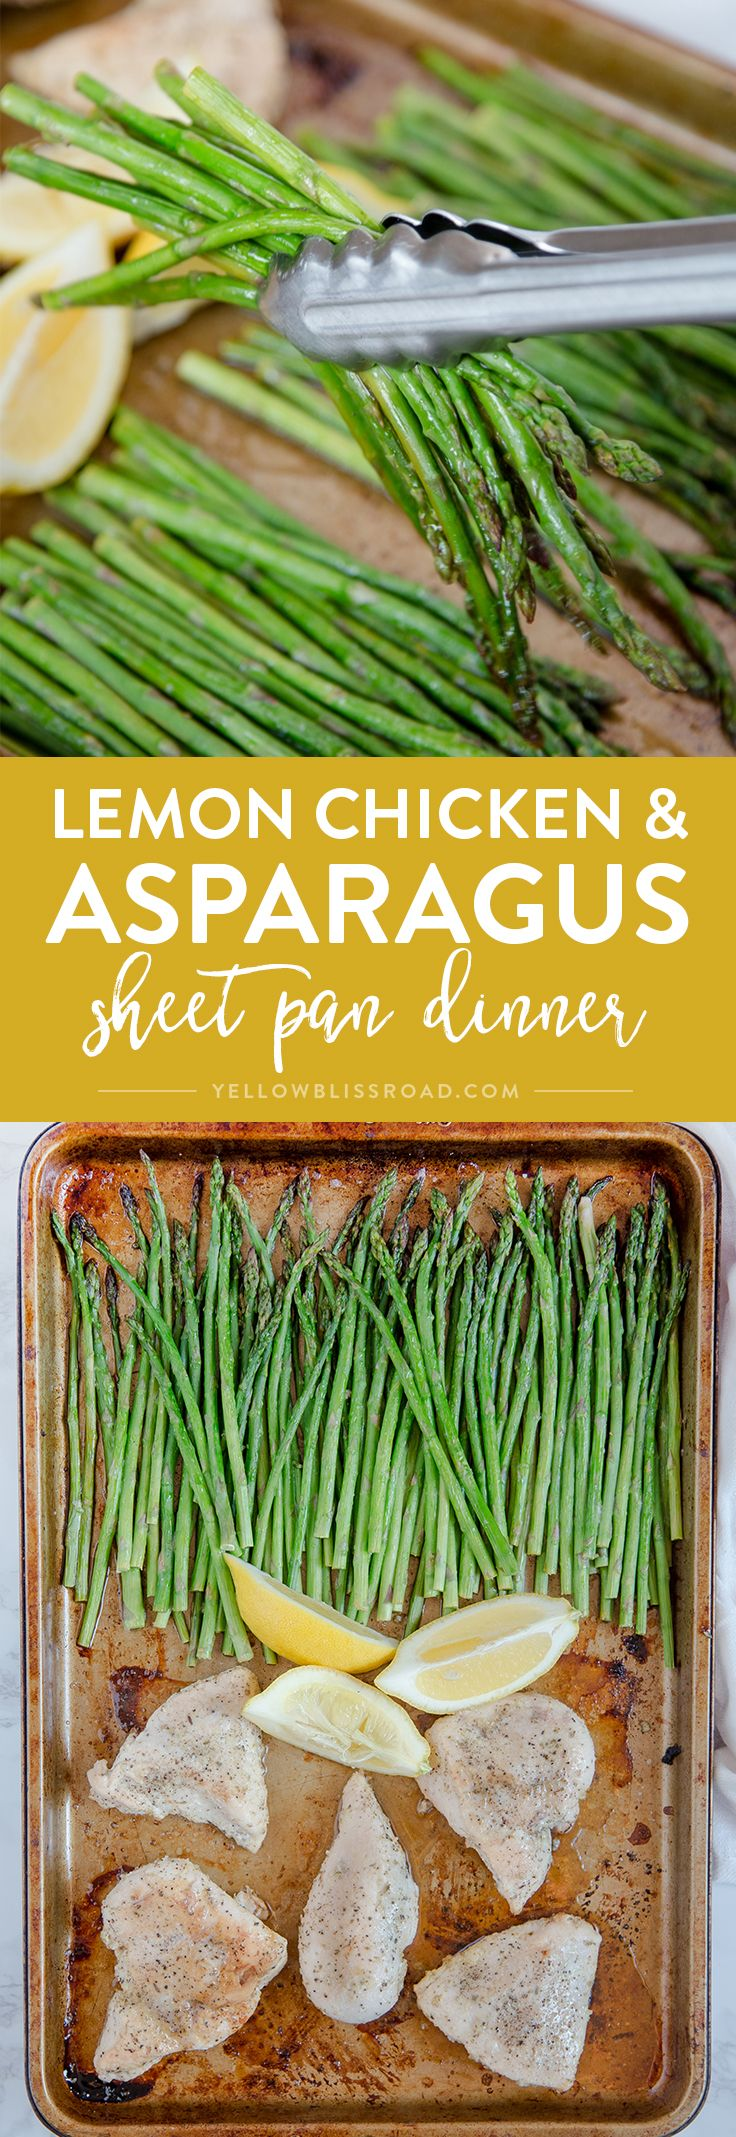 This Lemon Herb Chicken & Asparagus Sheet Pan Dinner is a delicious and healthy one pan meal that is perfect for busy weeknights! via @yellowblissroad